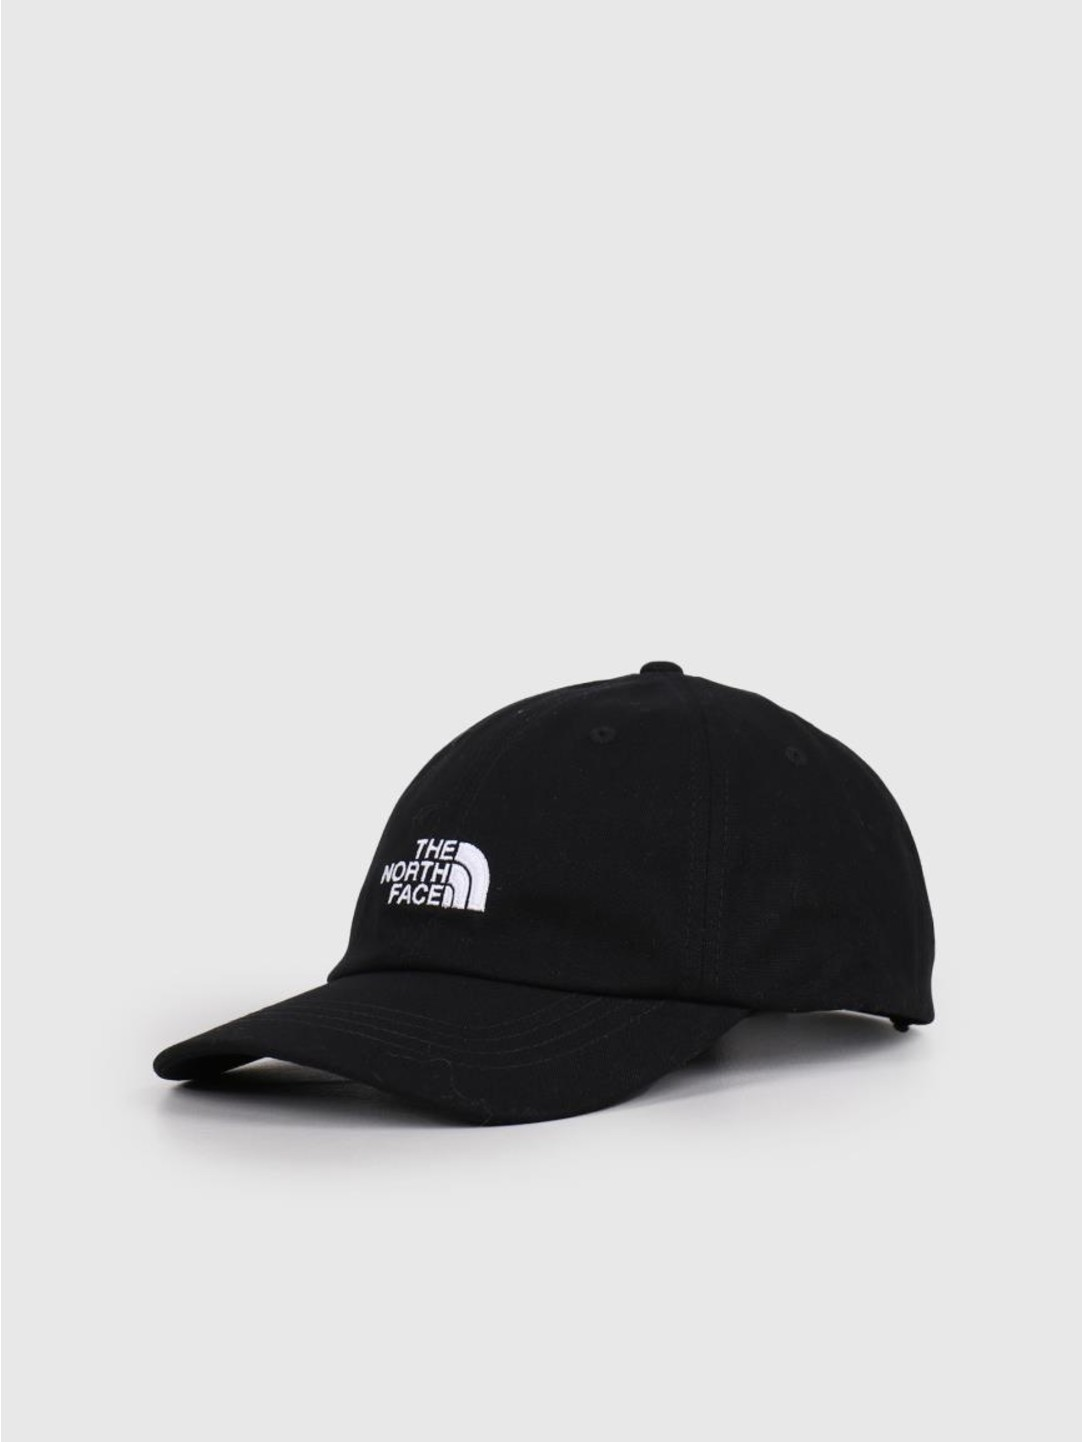 The North Face The North Face NorHat TNF Black NF0A3SH3JK31